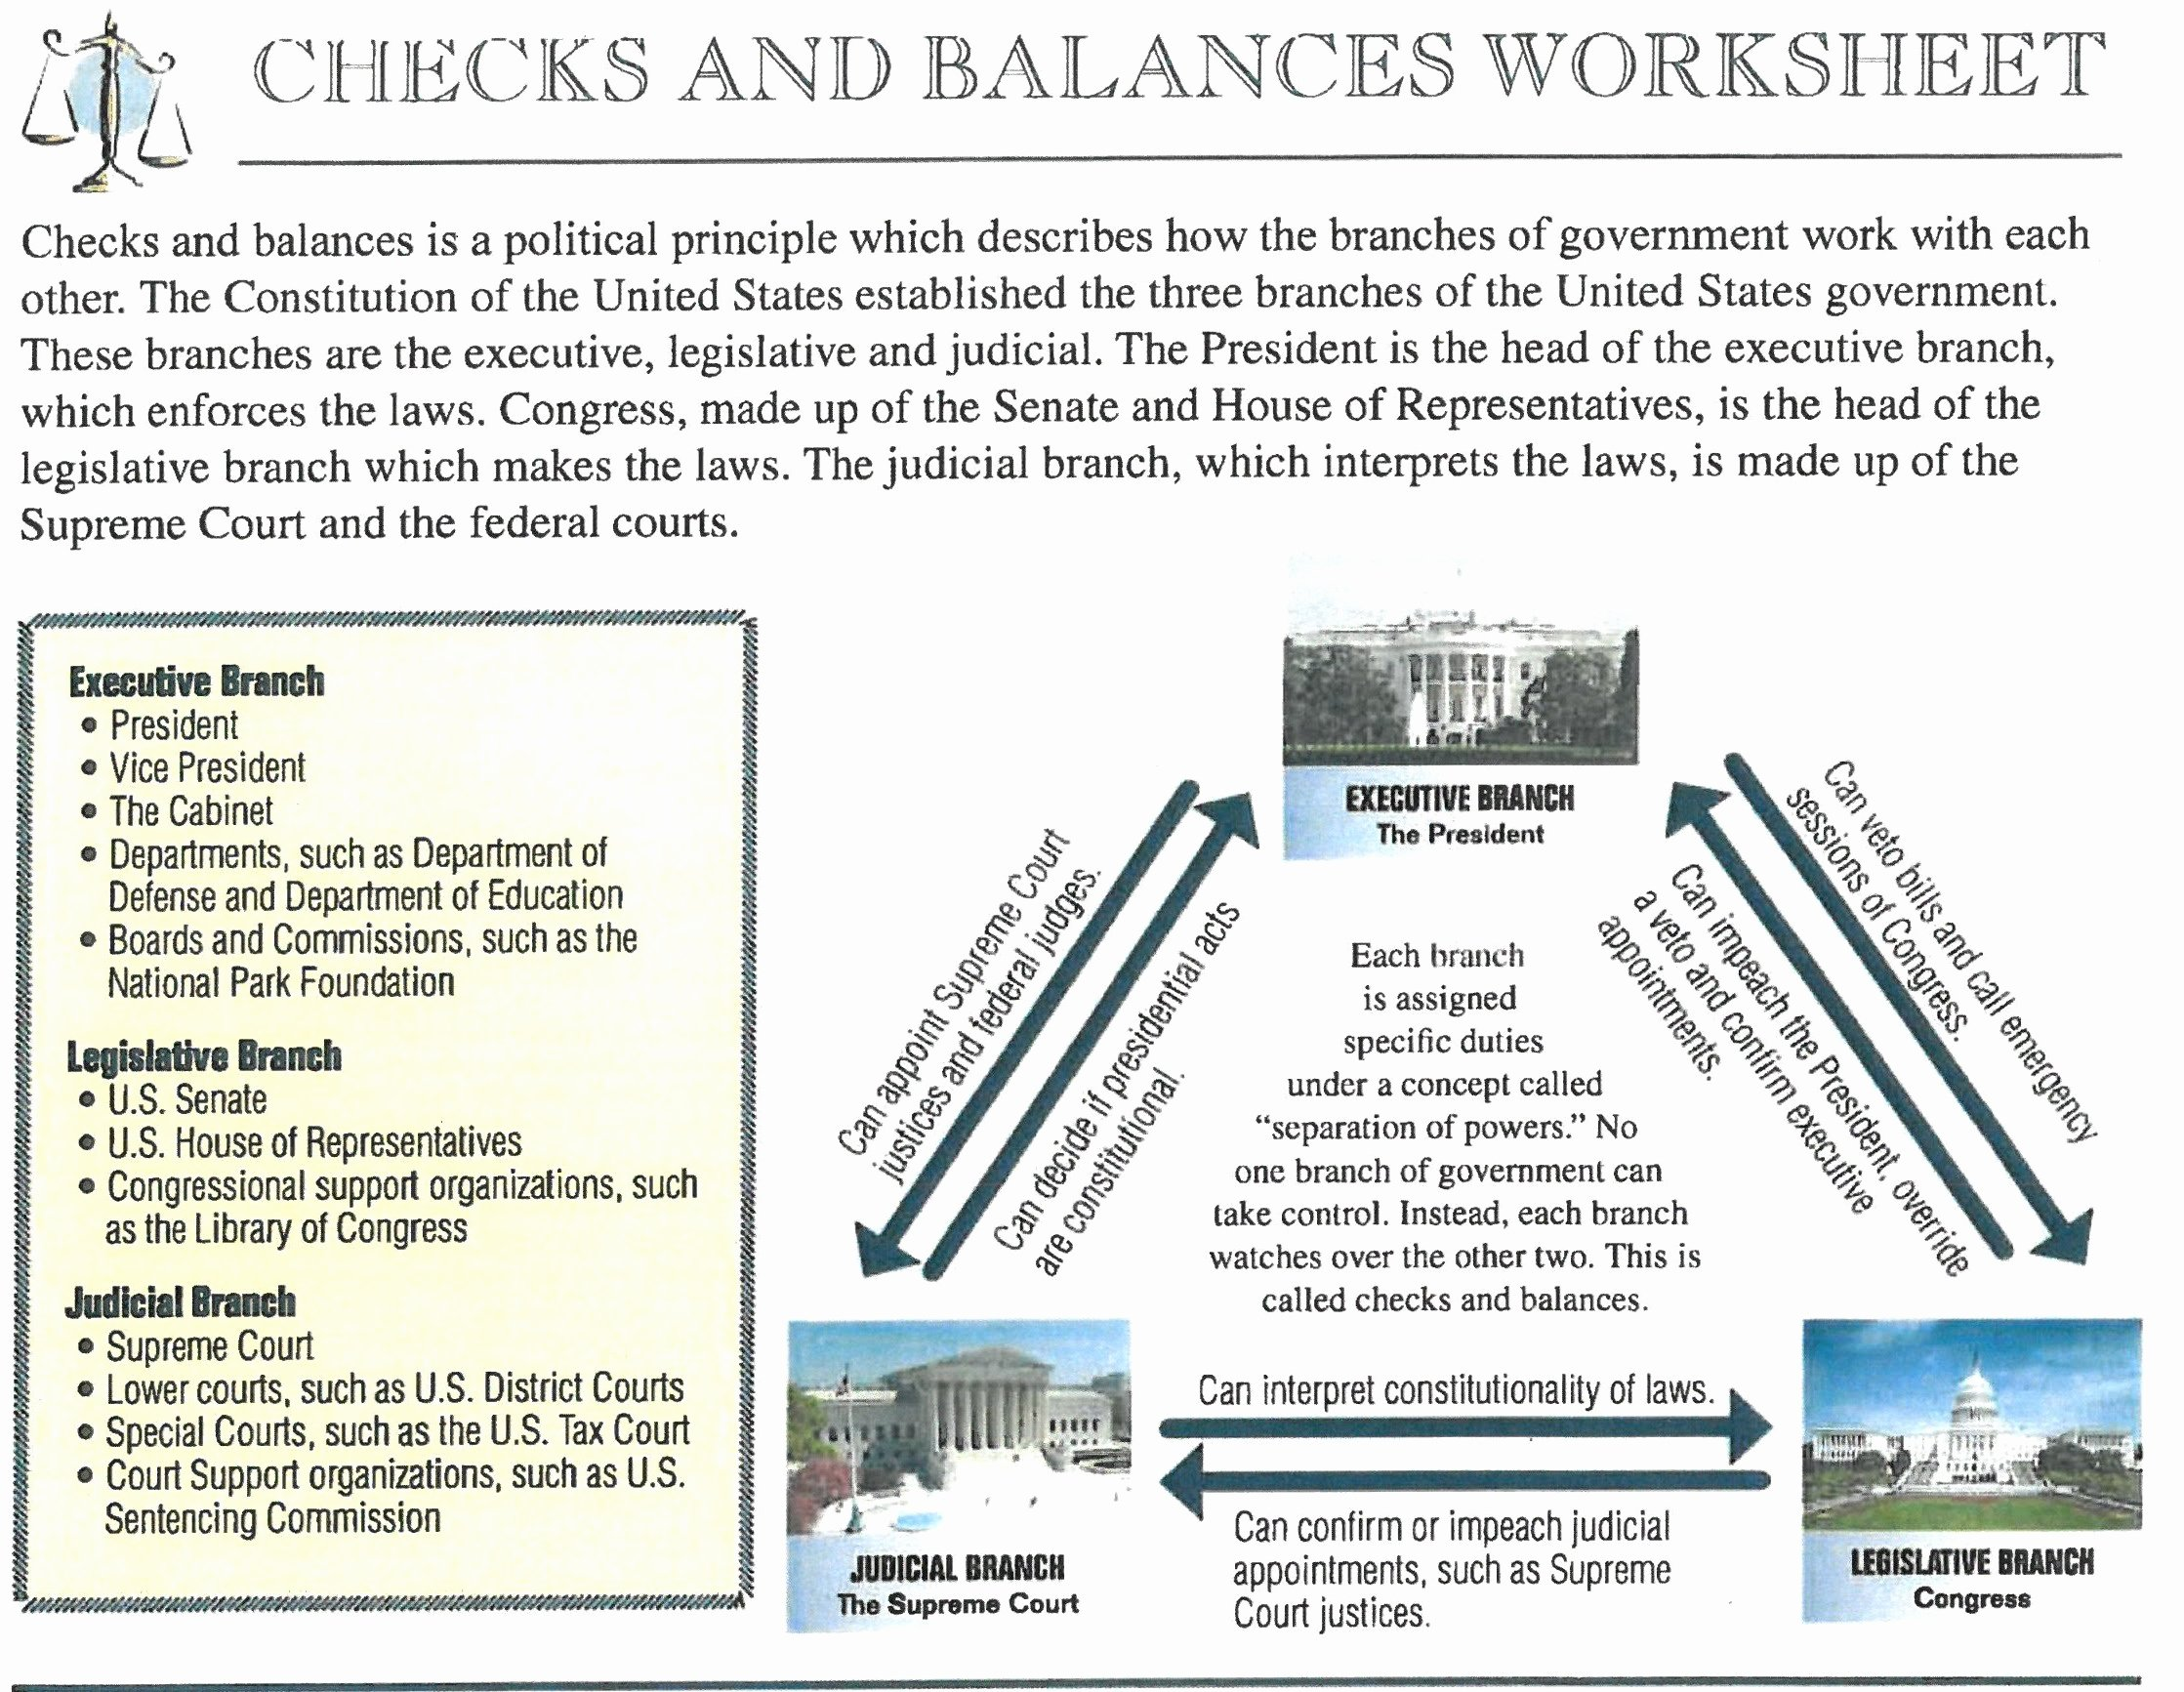 Checks and Balances Worksheet Answers Beautiful Checks and Balances Worksheet Funresearcher